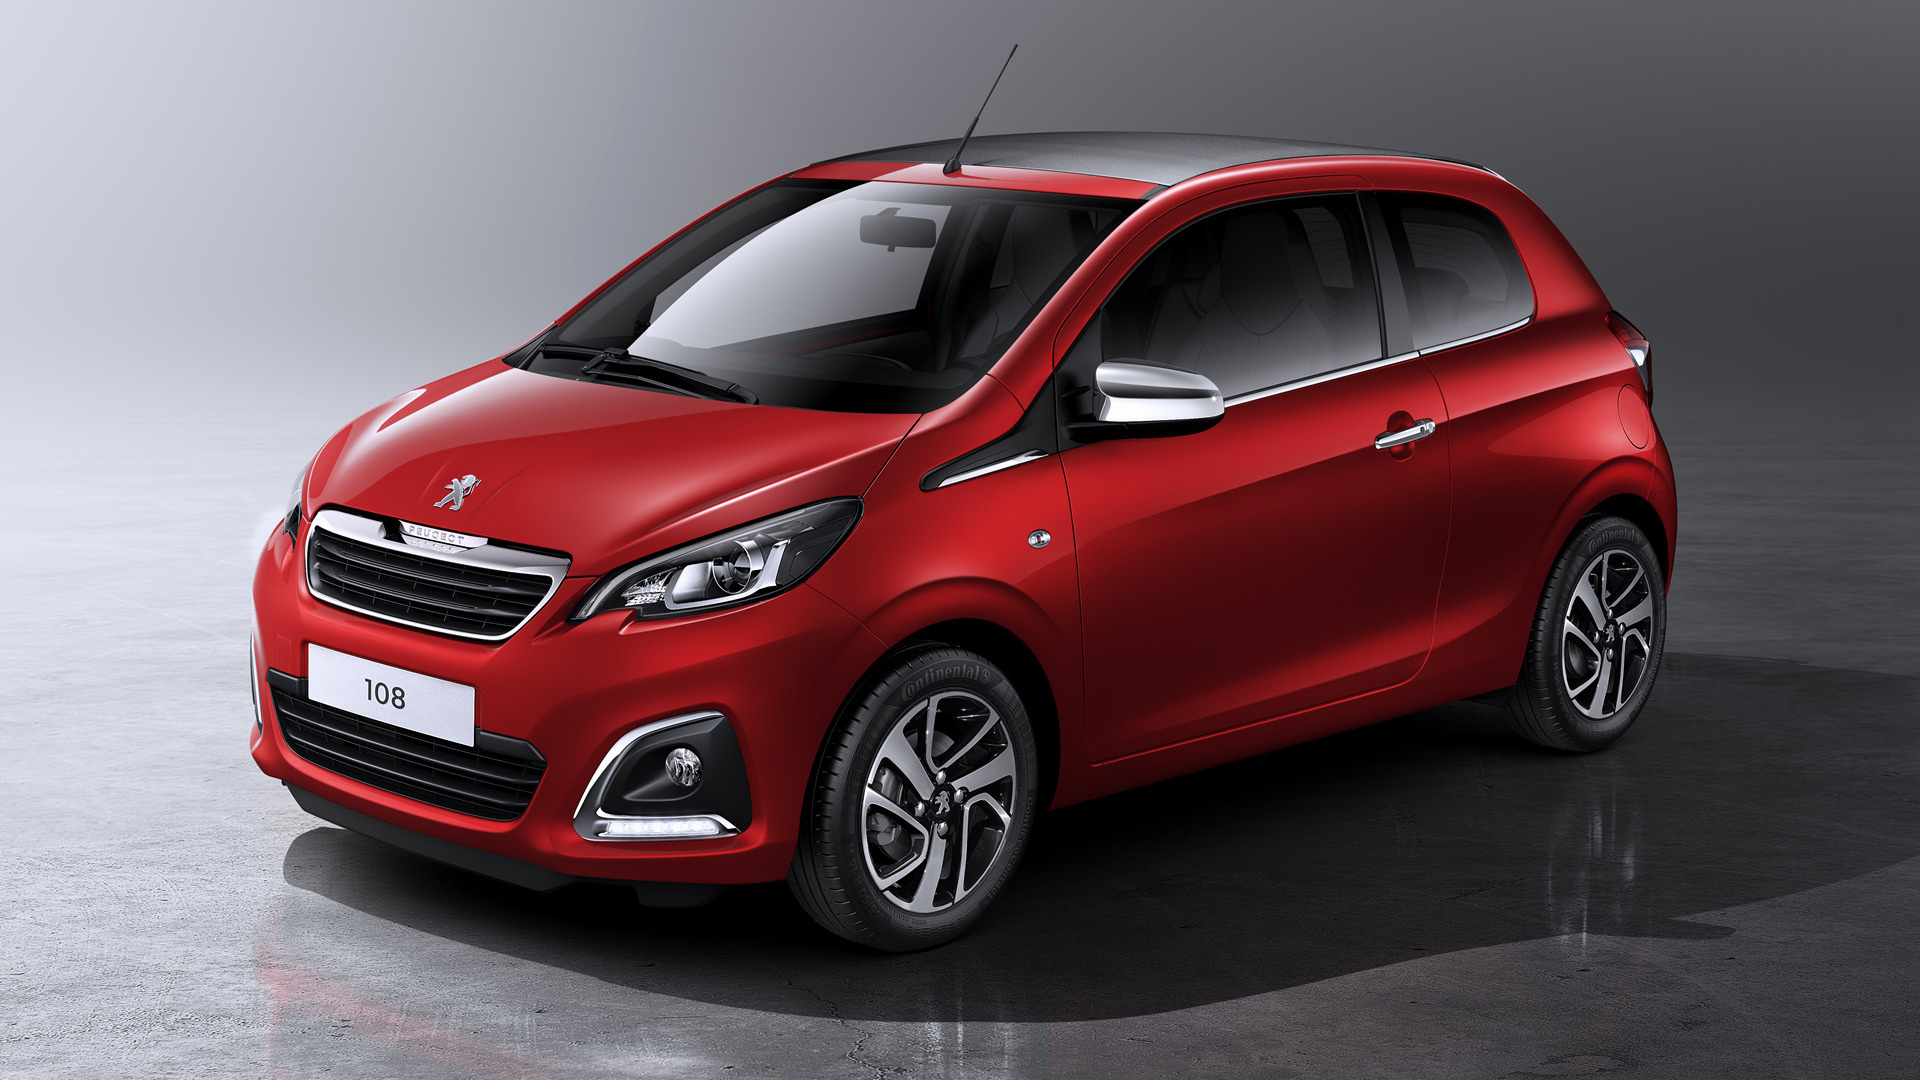 peugeot 108 top 3 door 2014 wallpapers and hd images car pixel. Black Bedroom Furniture Sets. Home Design Ideas